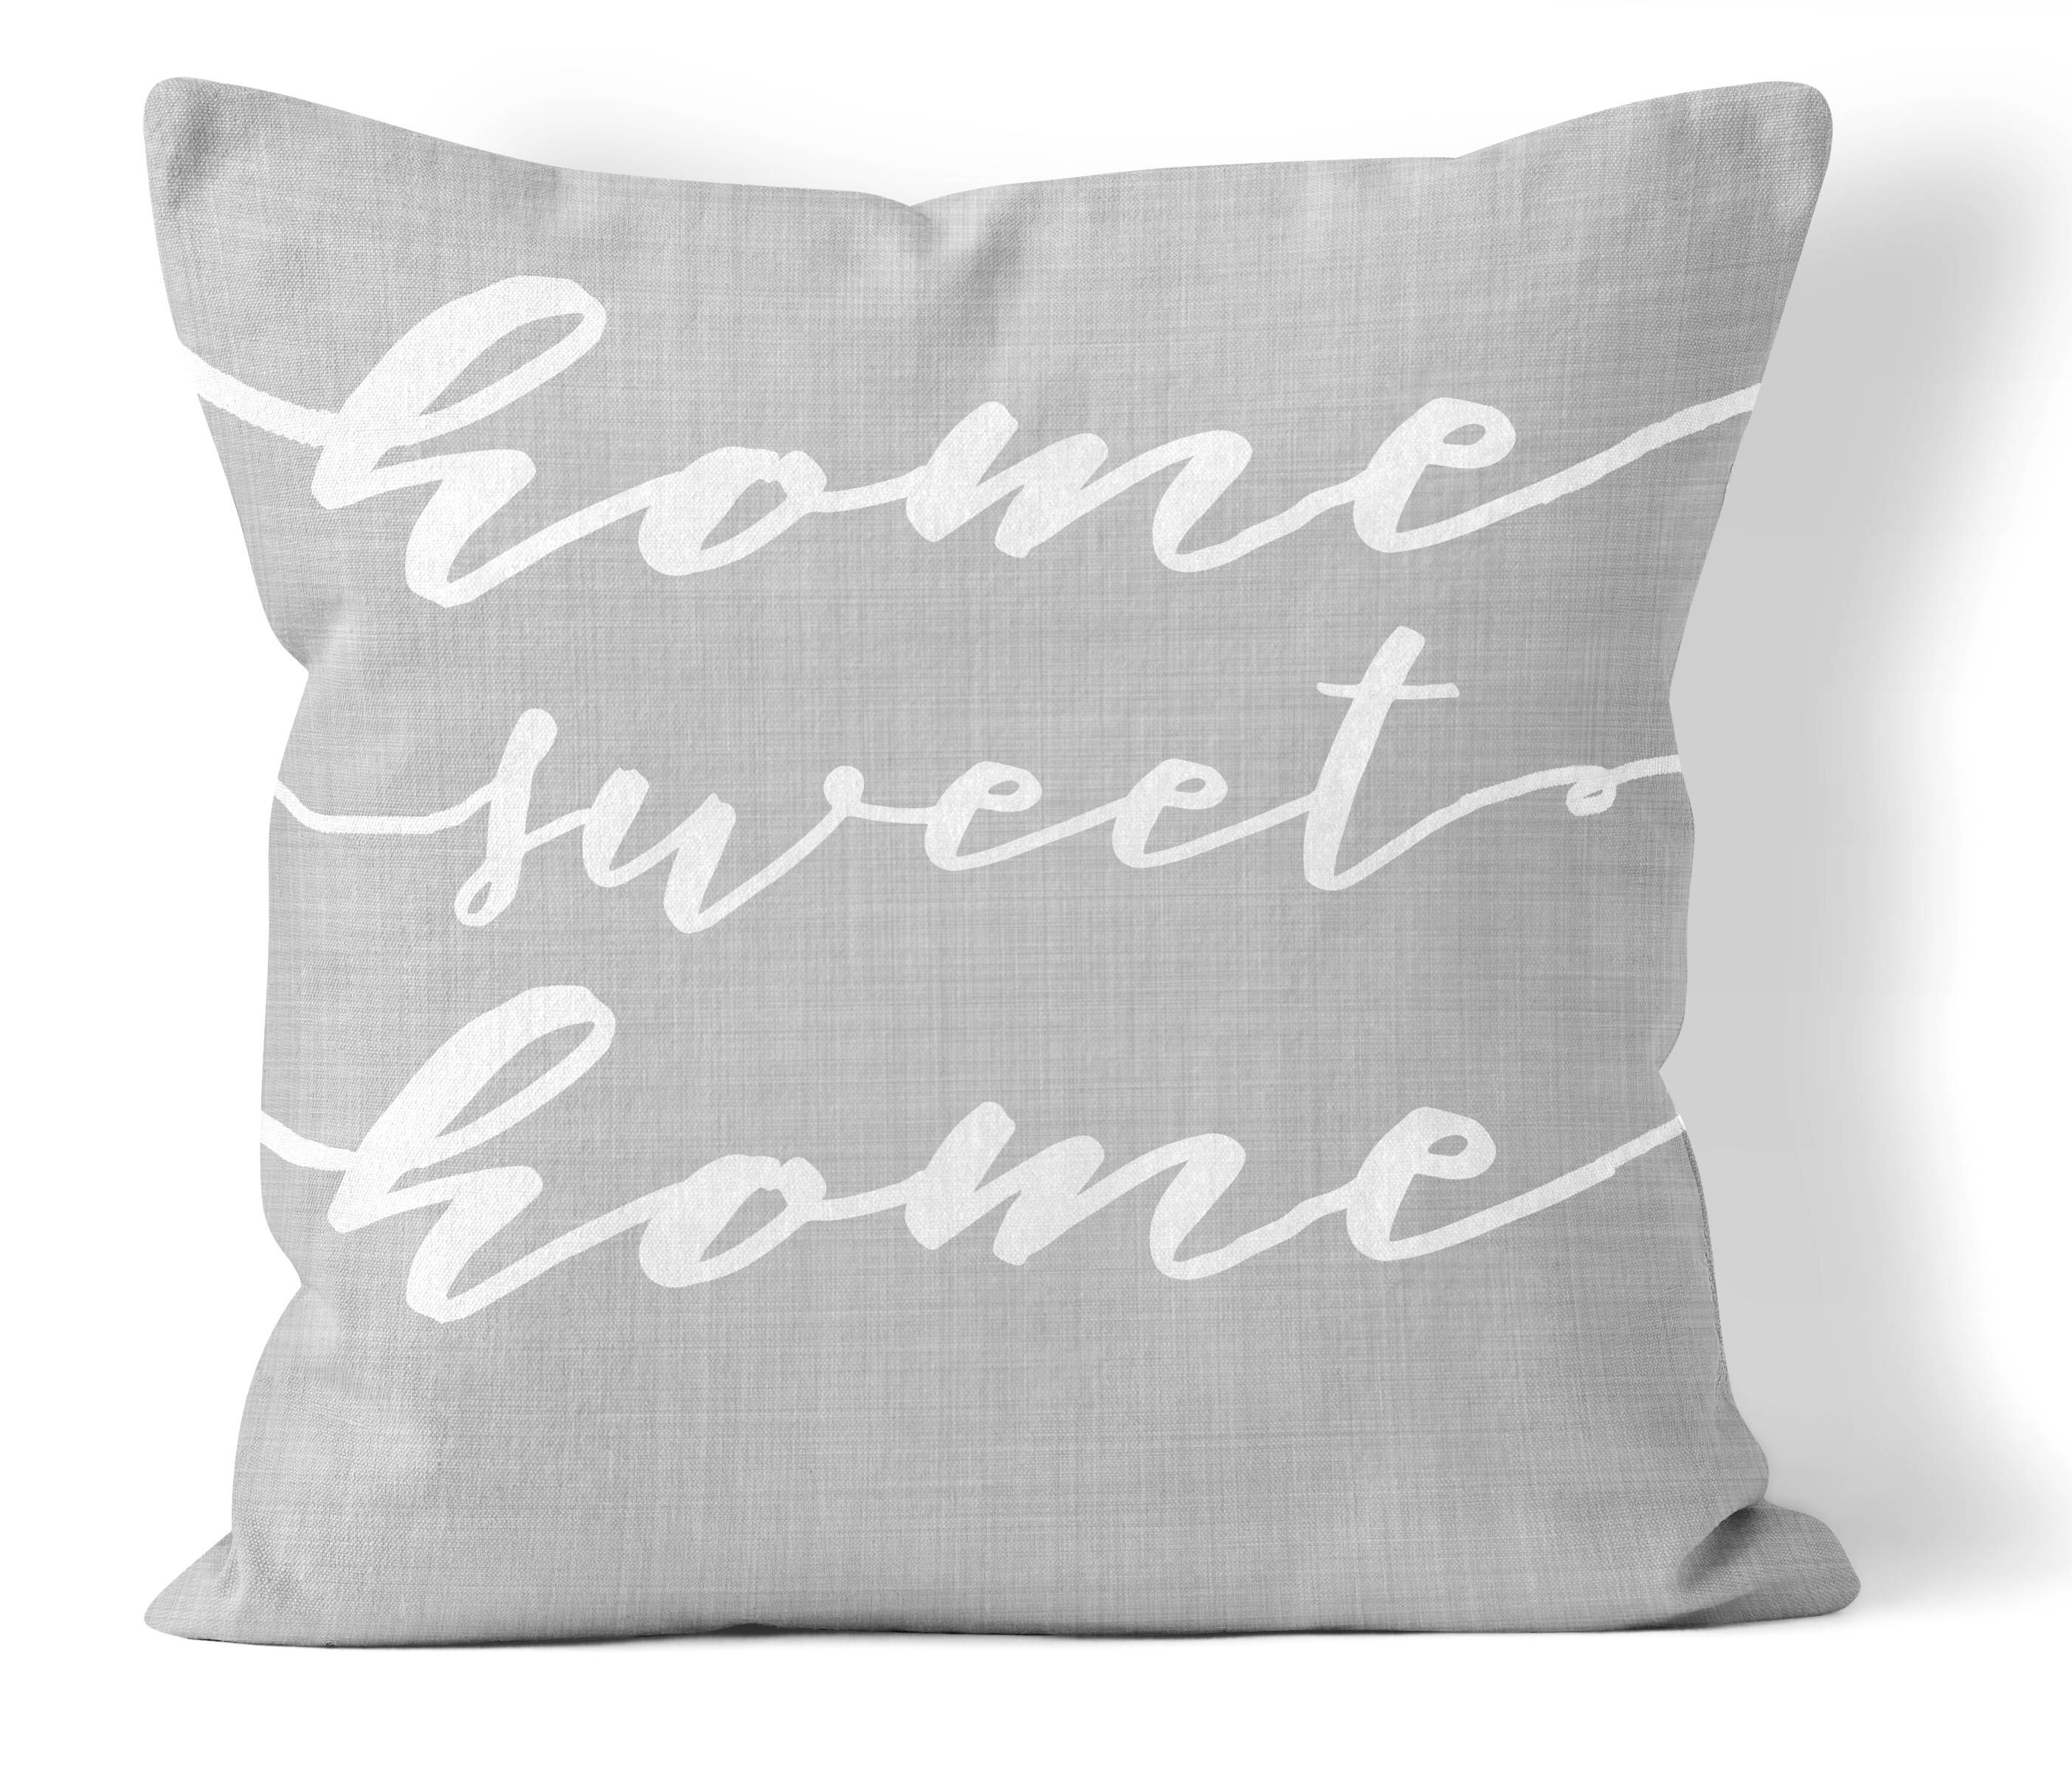 home sweet home pillow cover 18x18 in, gray and white